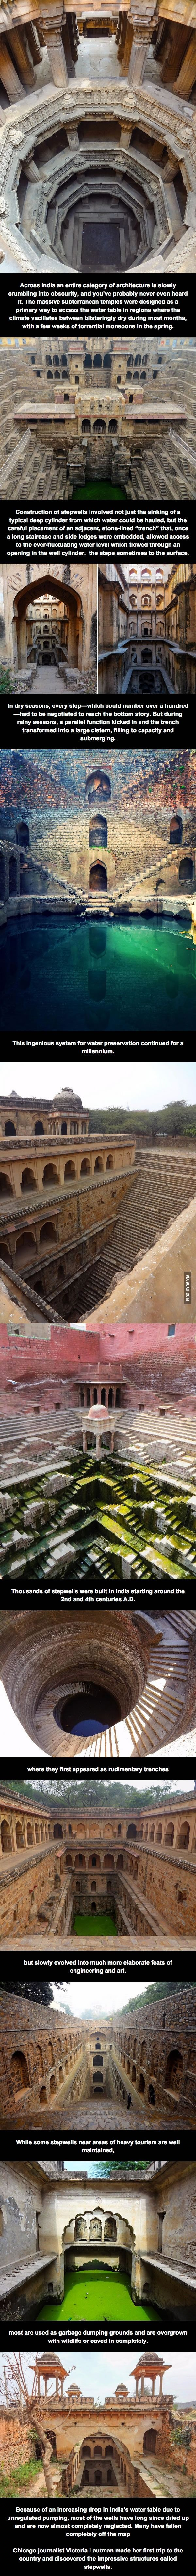 Journalist spends four years traveling India to document crumbling subterranean stepwells in India before they disappear